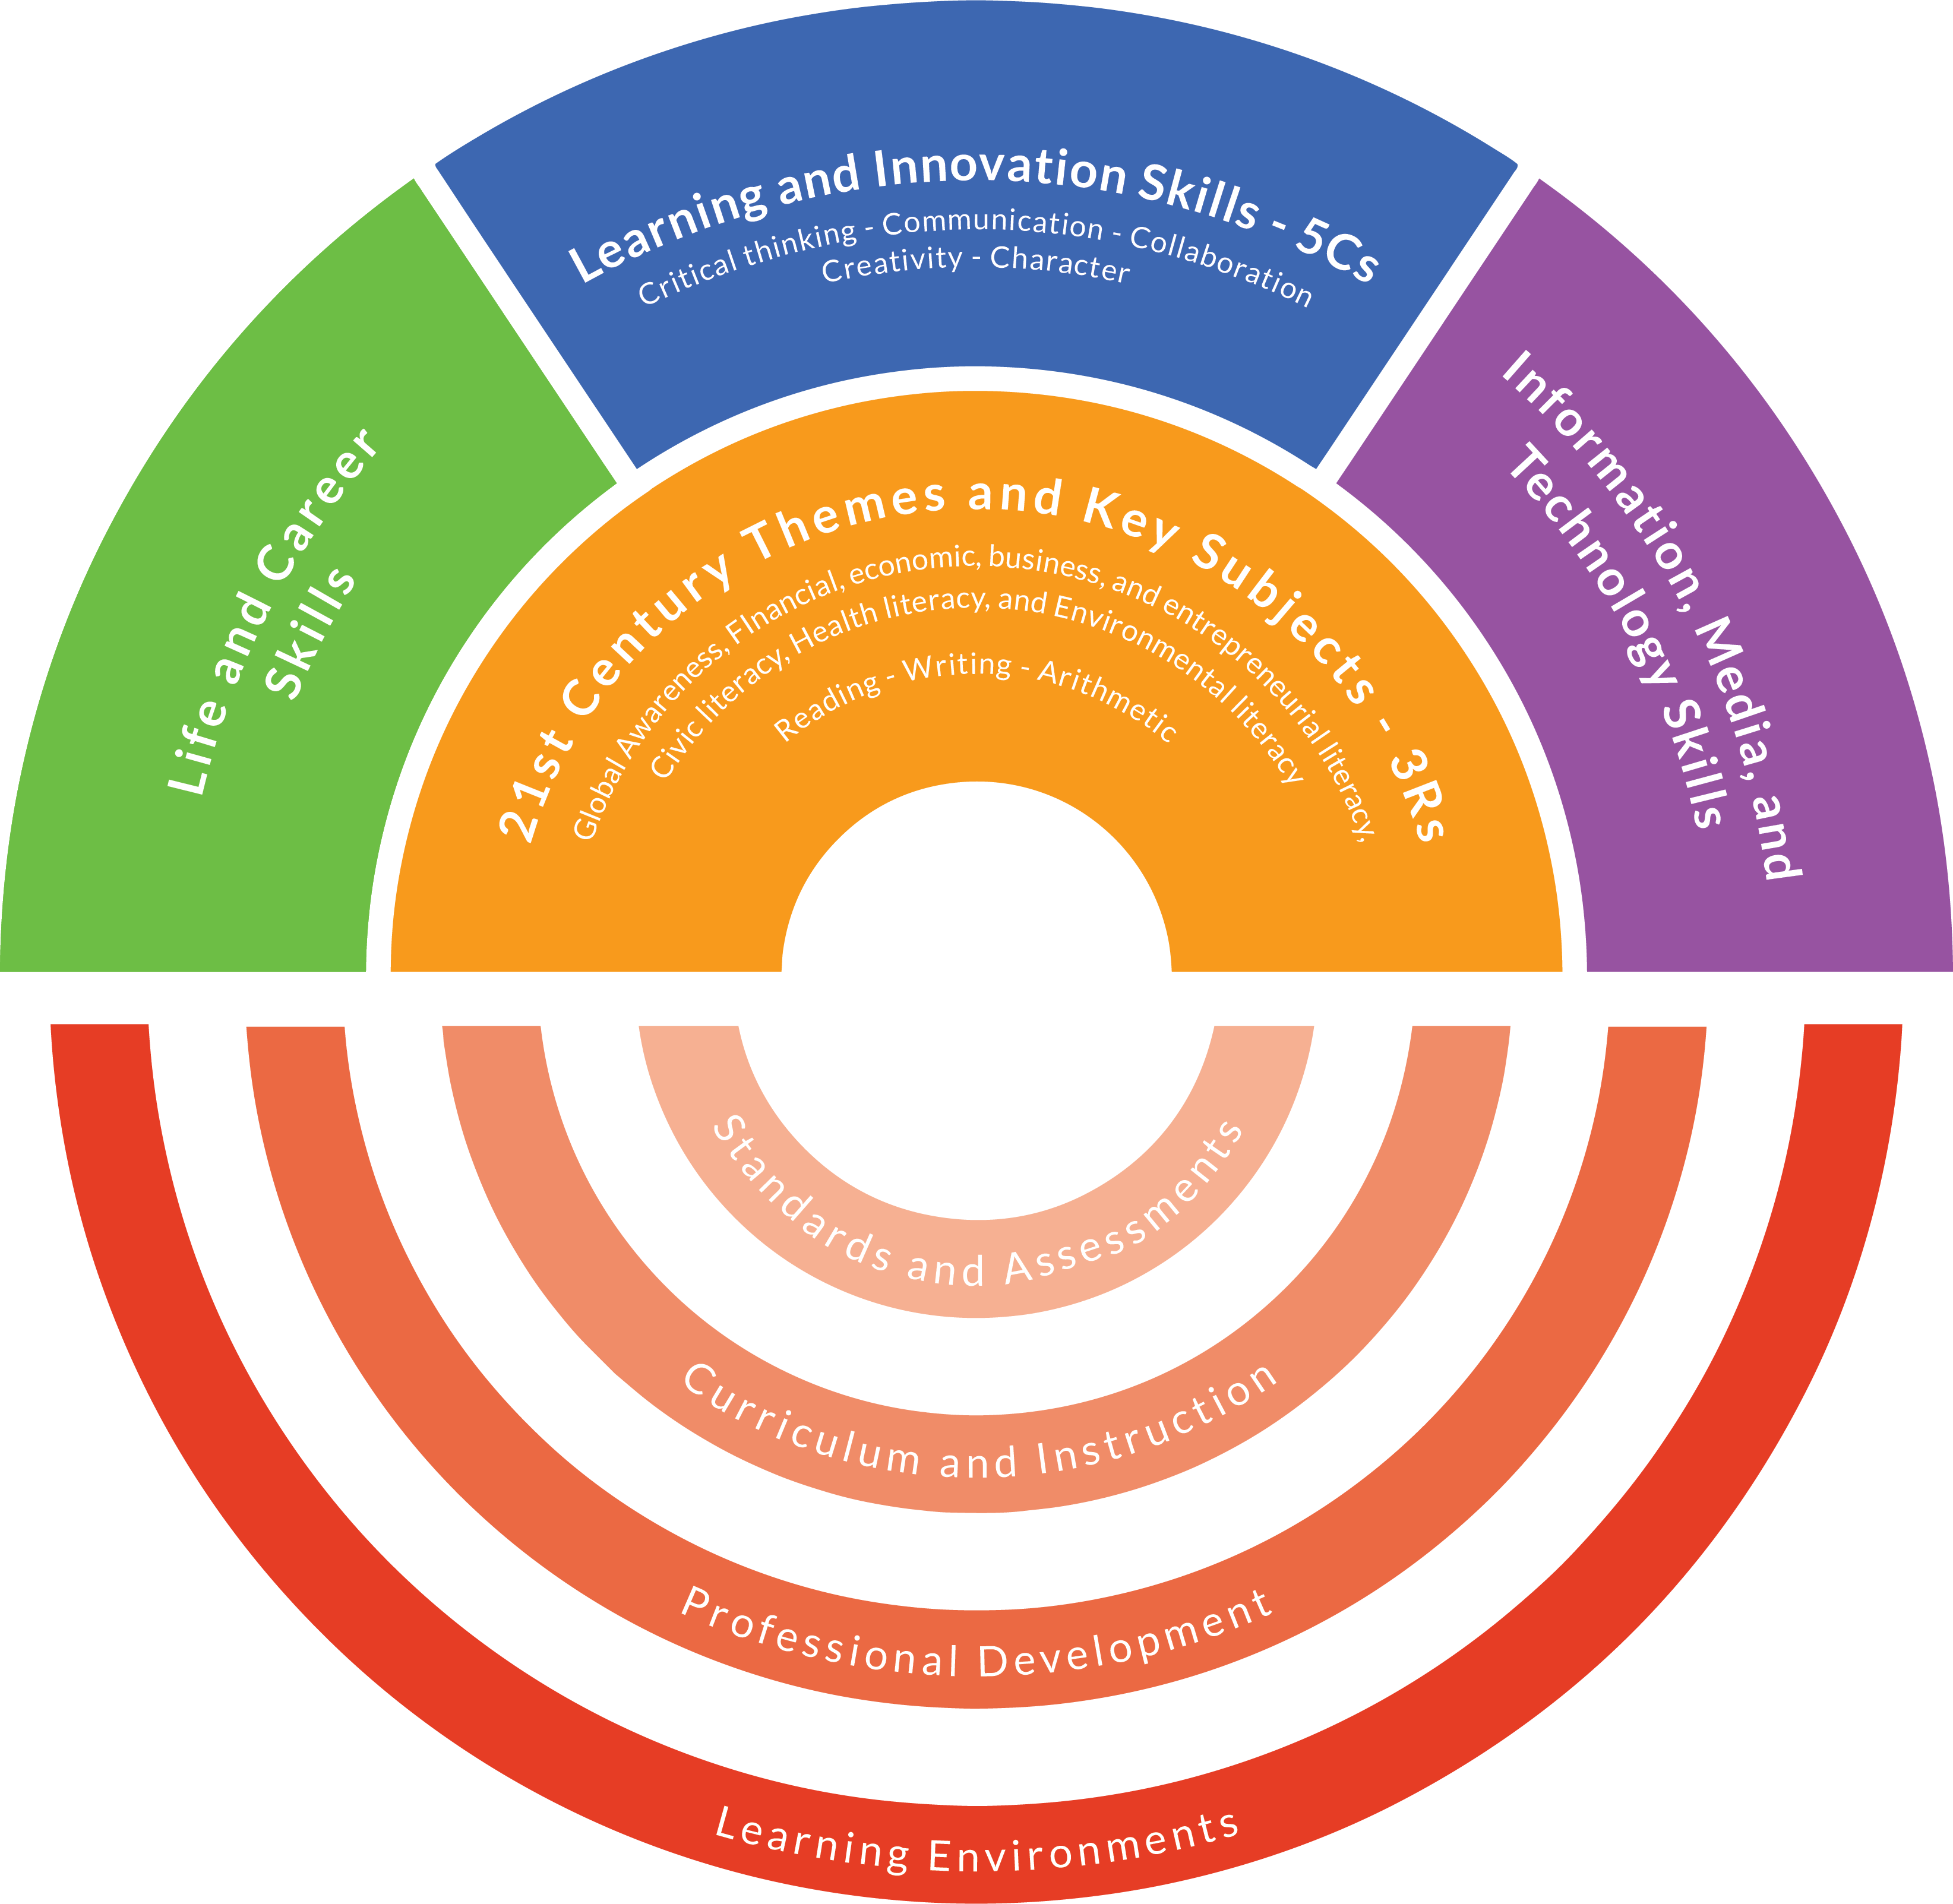 Framework for 21st Century Learning (An Infographic).